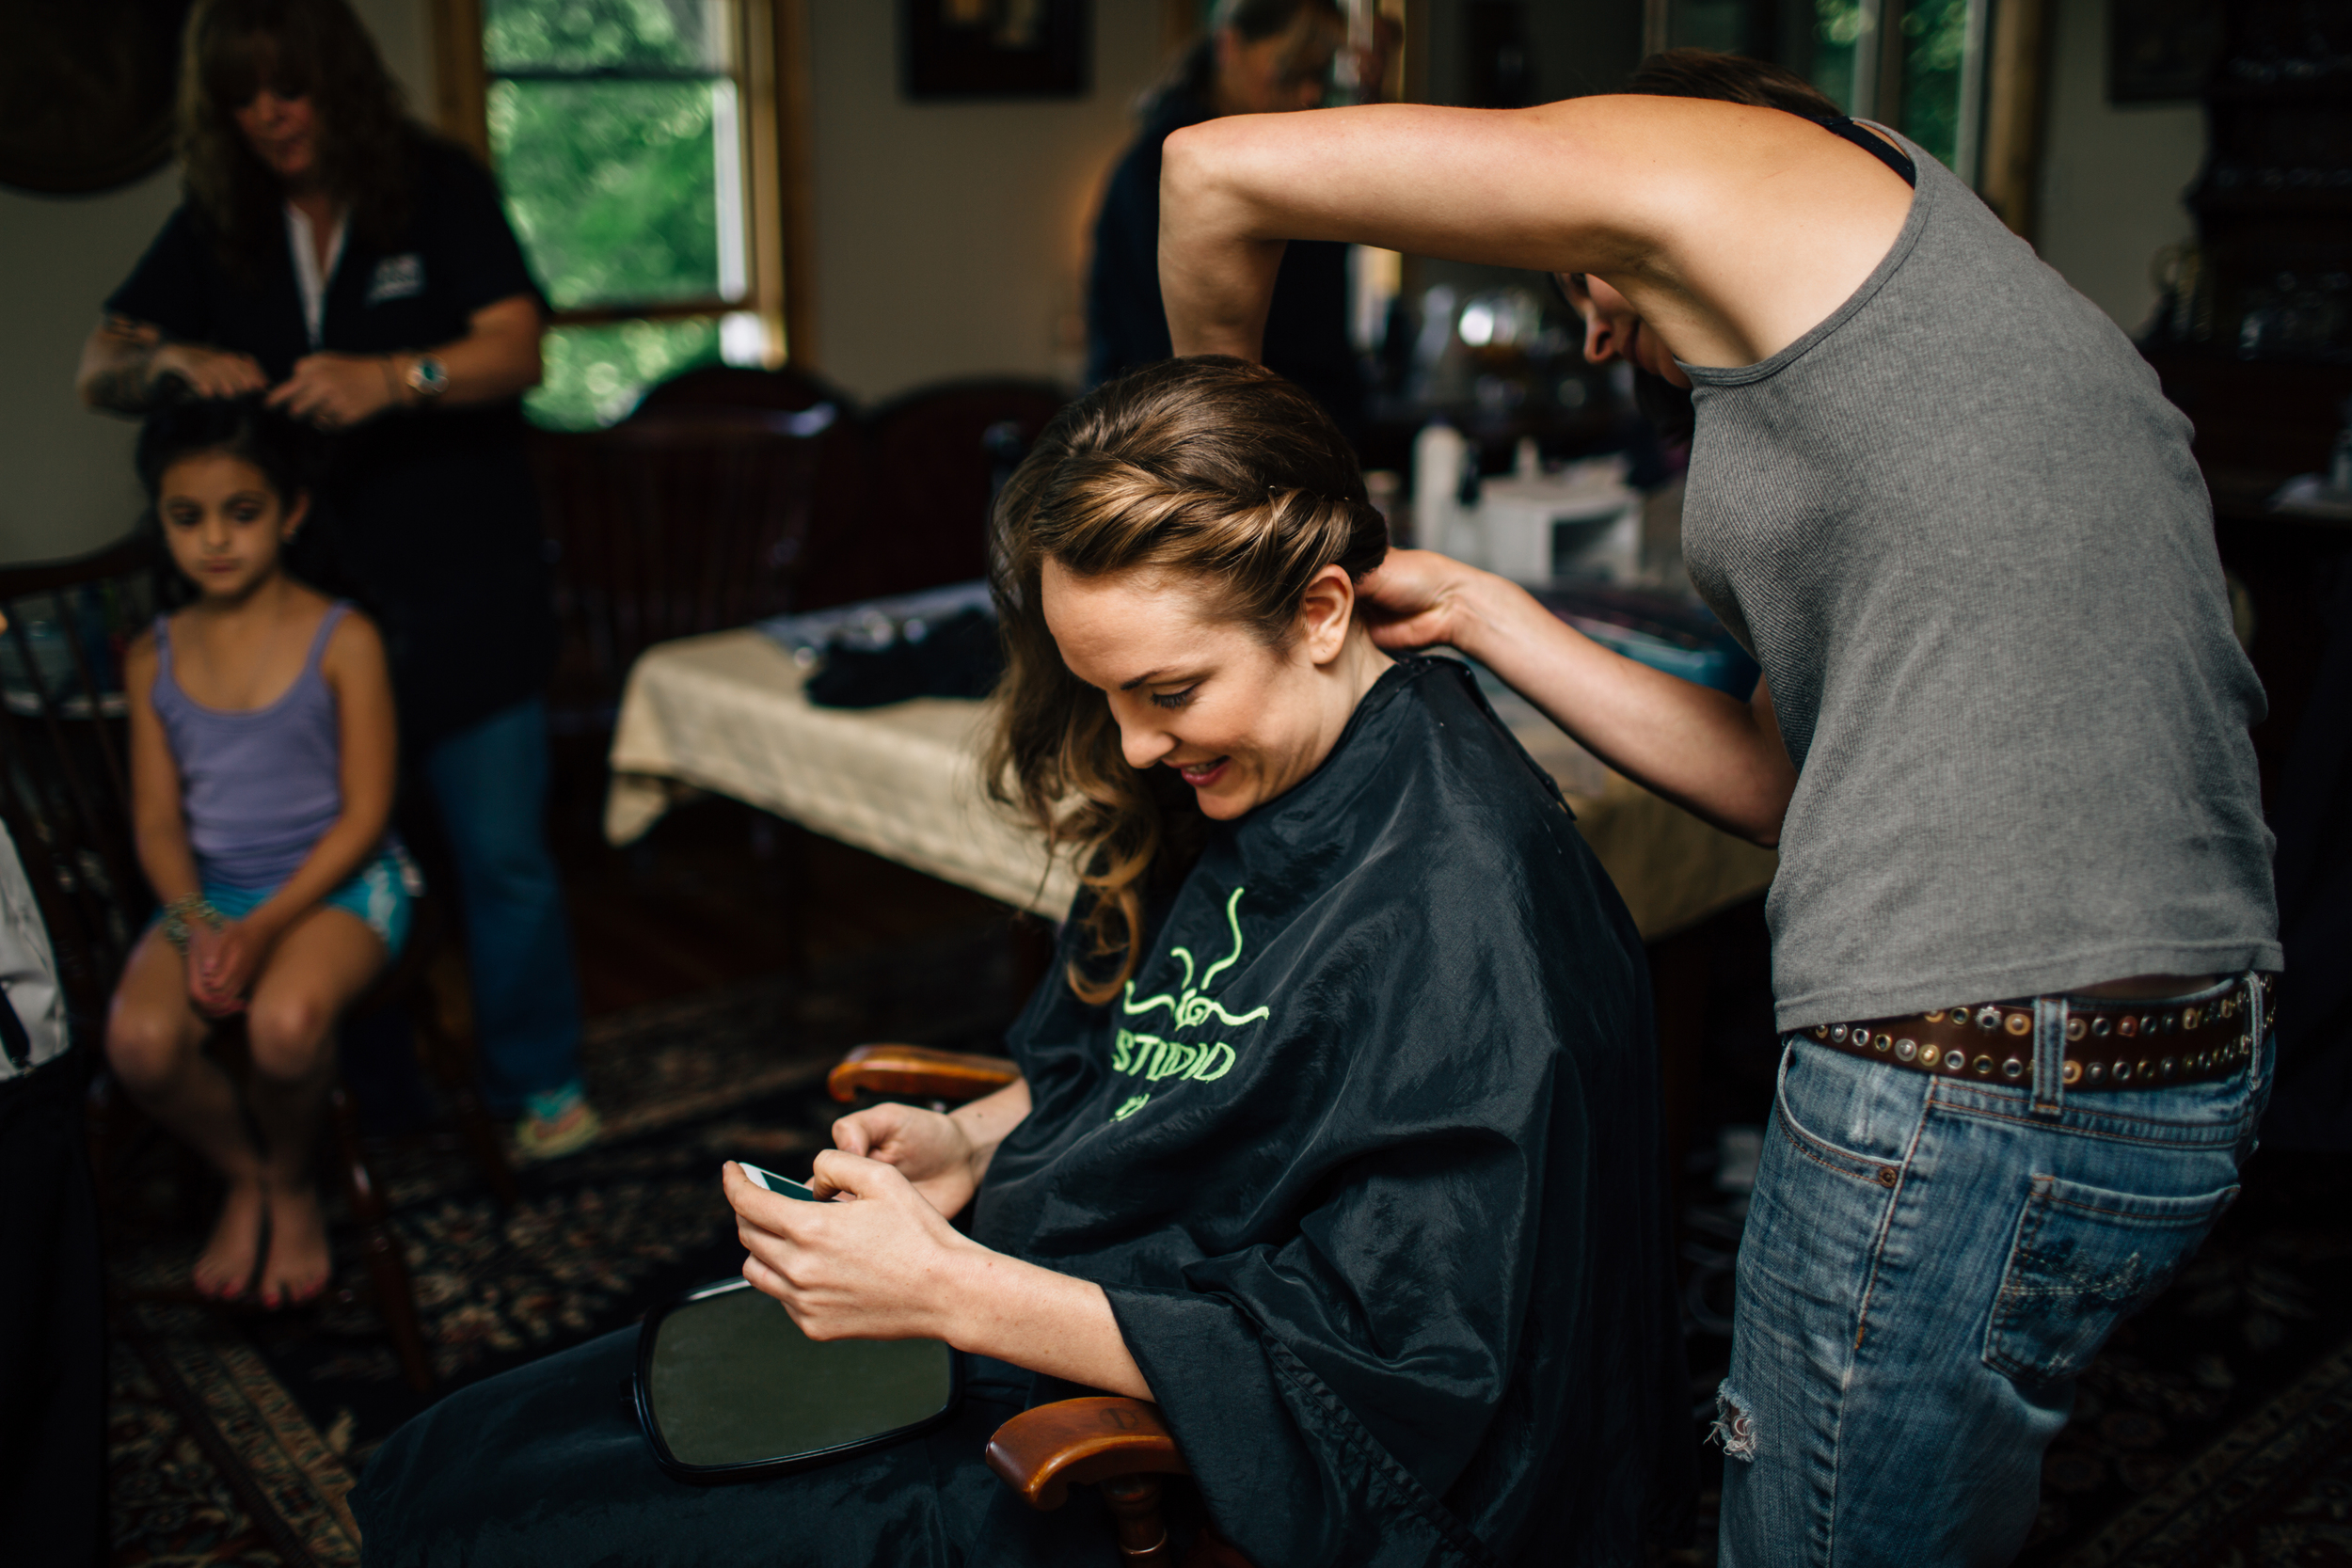 KELLIandBRADweddingJUNE2015 - gettingready (4 of 66).jpg